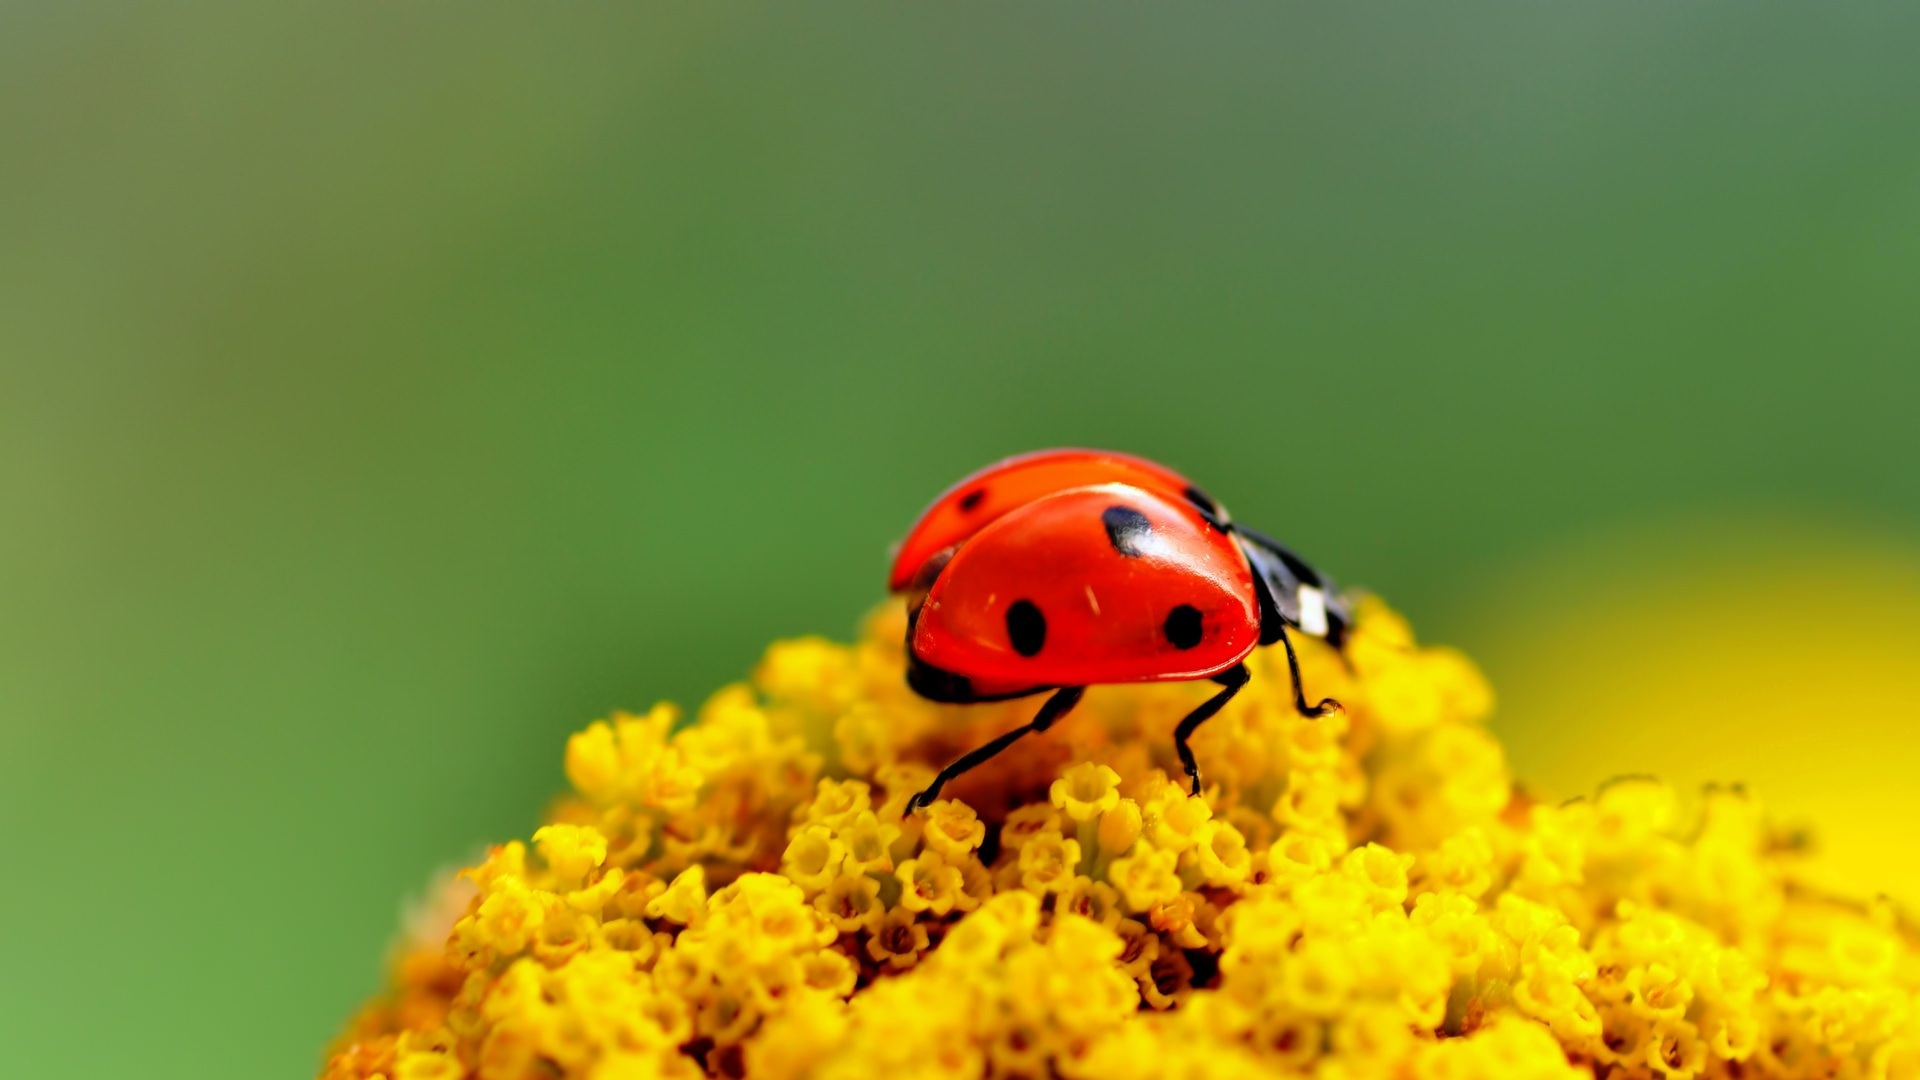 insects ladybirds desktop wallpapers - photo #27